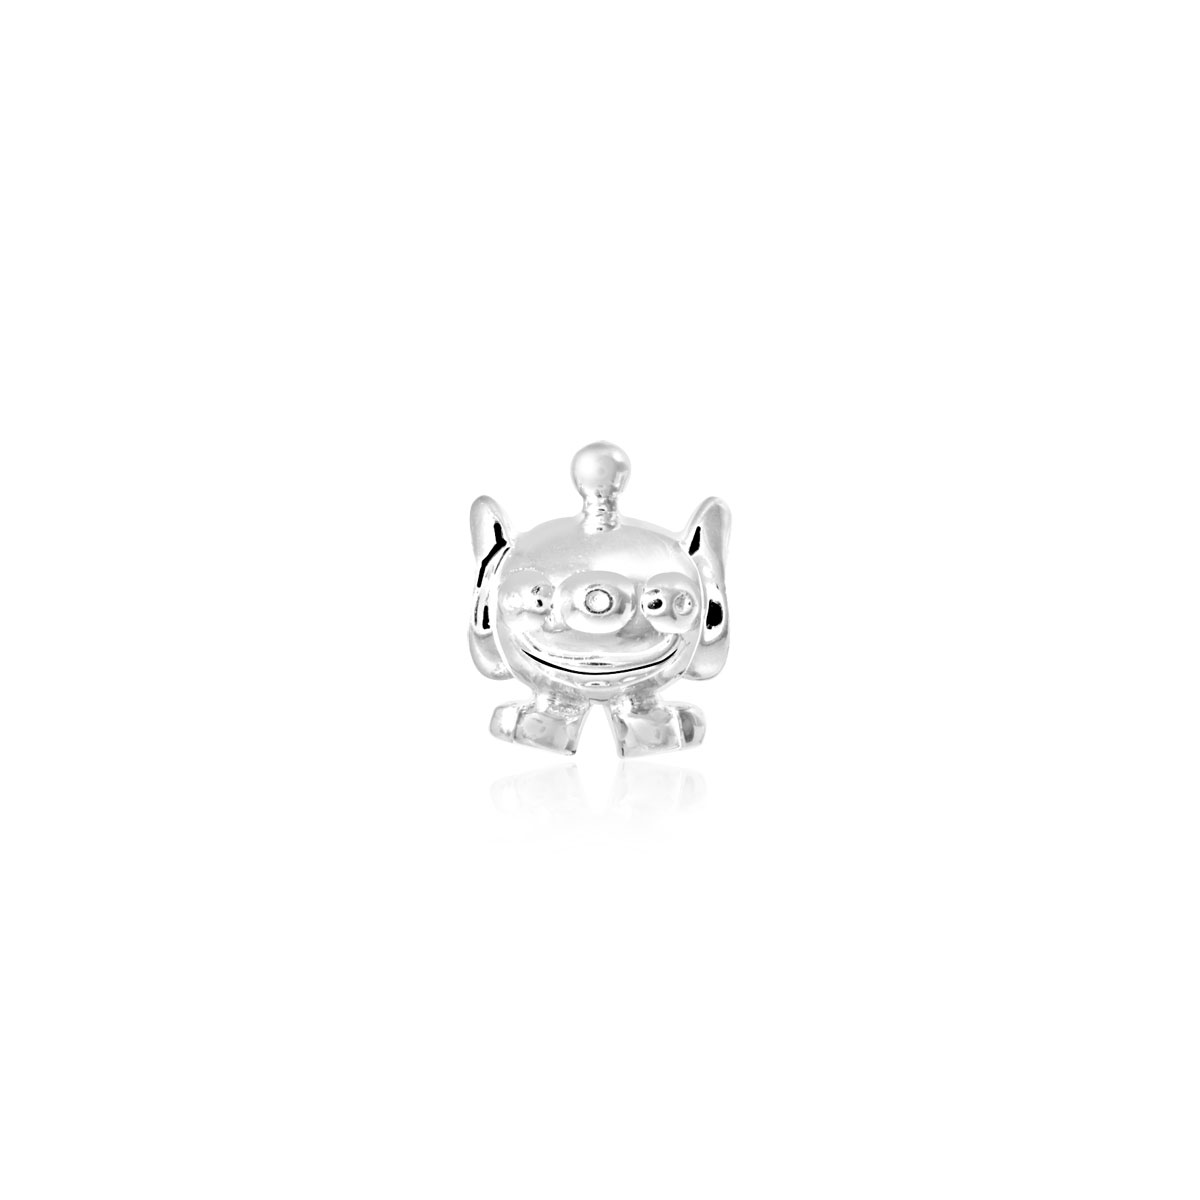 Charm's extraterrestre argent 925 - vue VD1